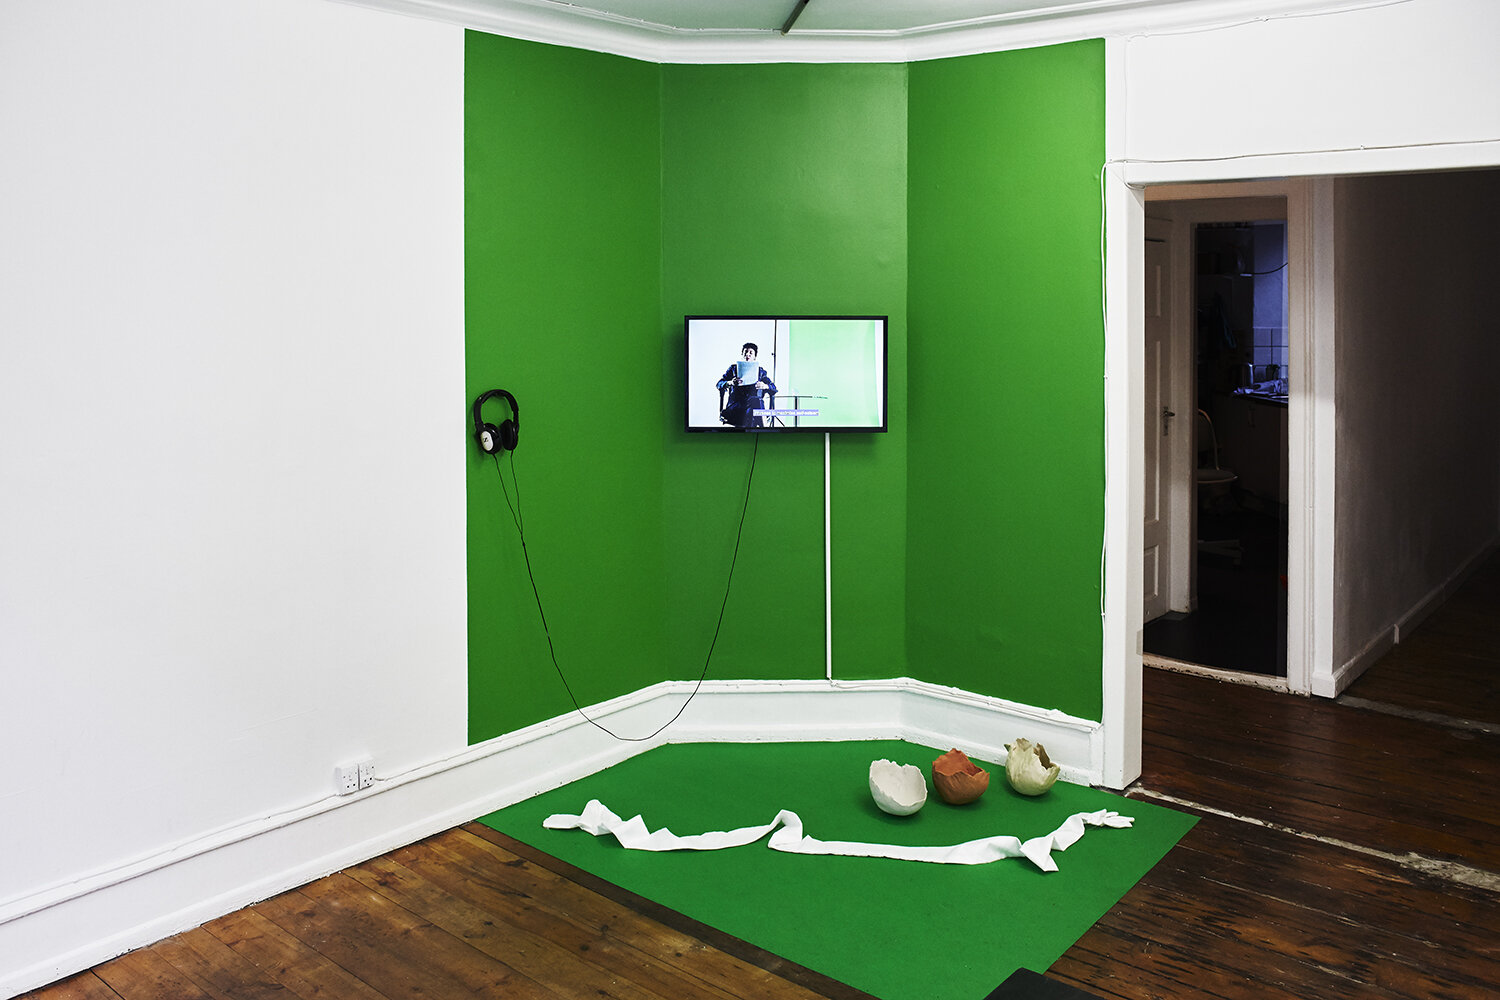 Rosa-Johan Uddoh, The Serve (2017-2019). Performed as part of New Contemporaries 2018-19 at South London Gallery, January 2019. Featuring Jo Pester as ball girl. Digital video, 12 min. Photo: SixtyEight Art Institute, 2019.